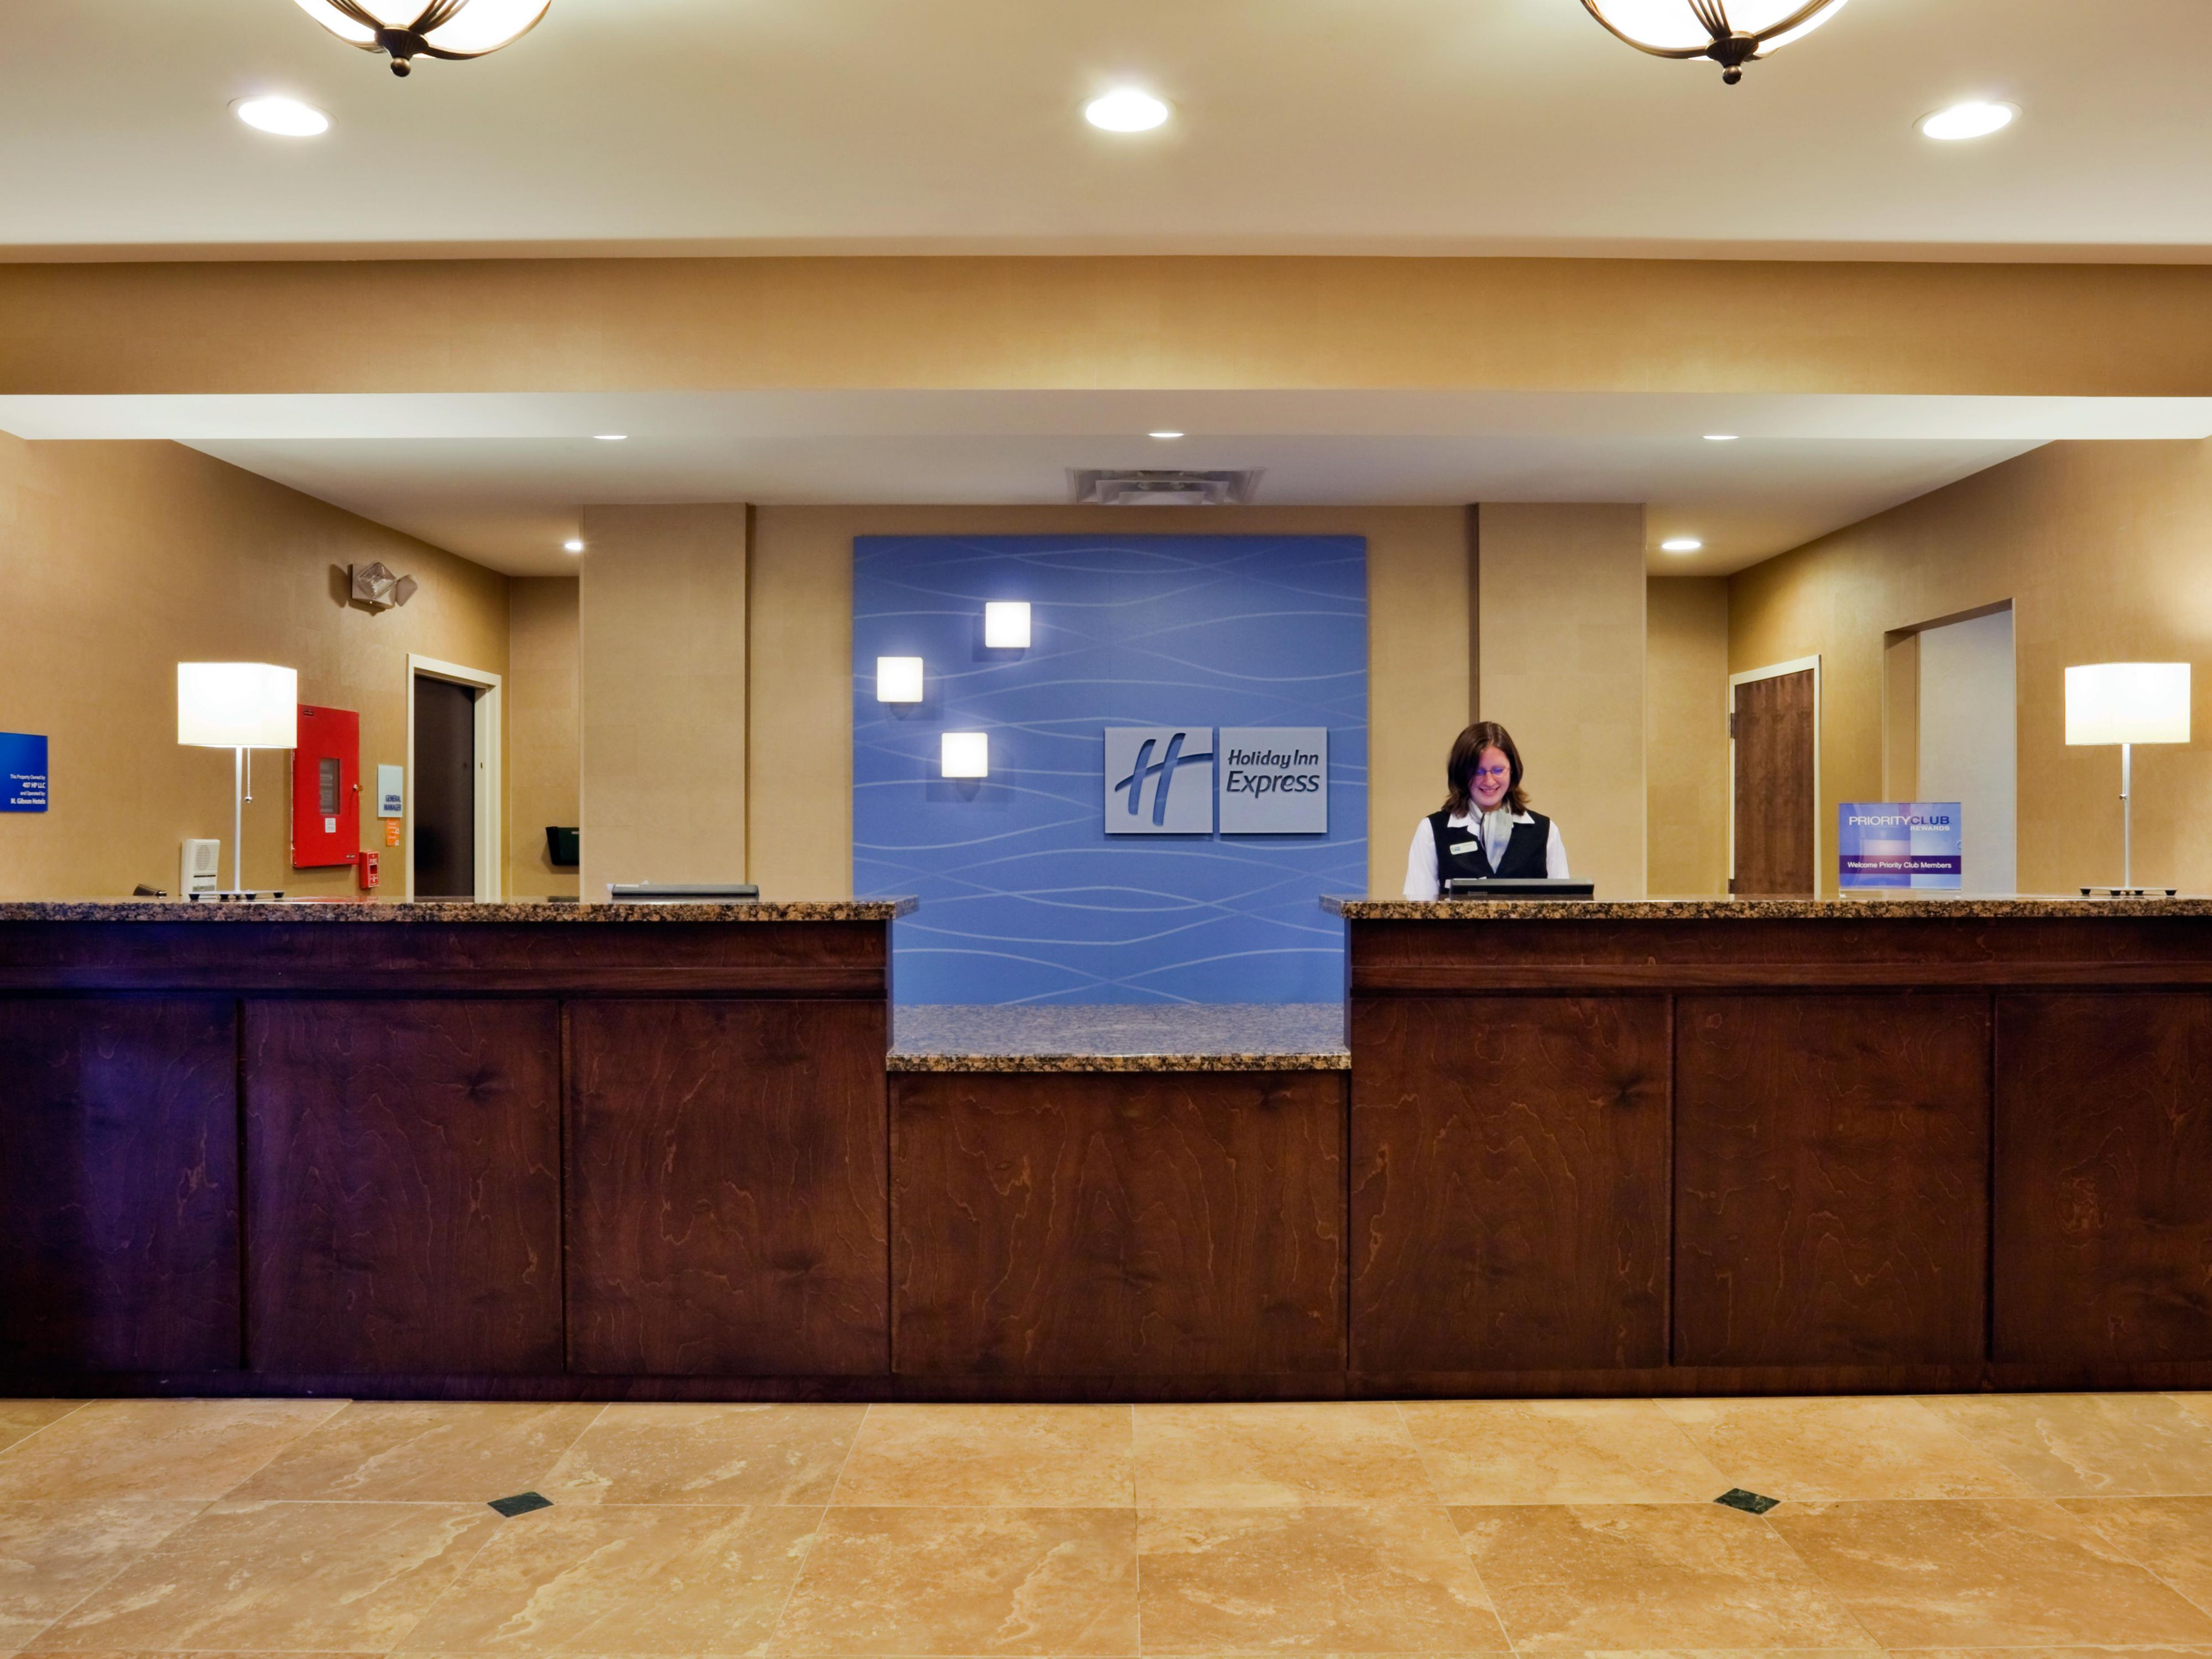 Welcome to the Sevierville Kodak Holiday Inn Express